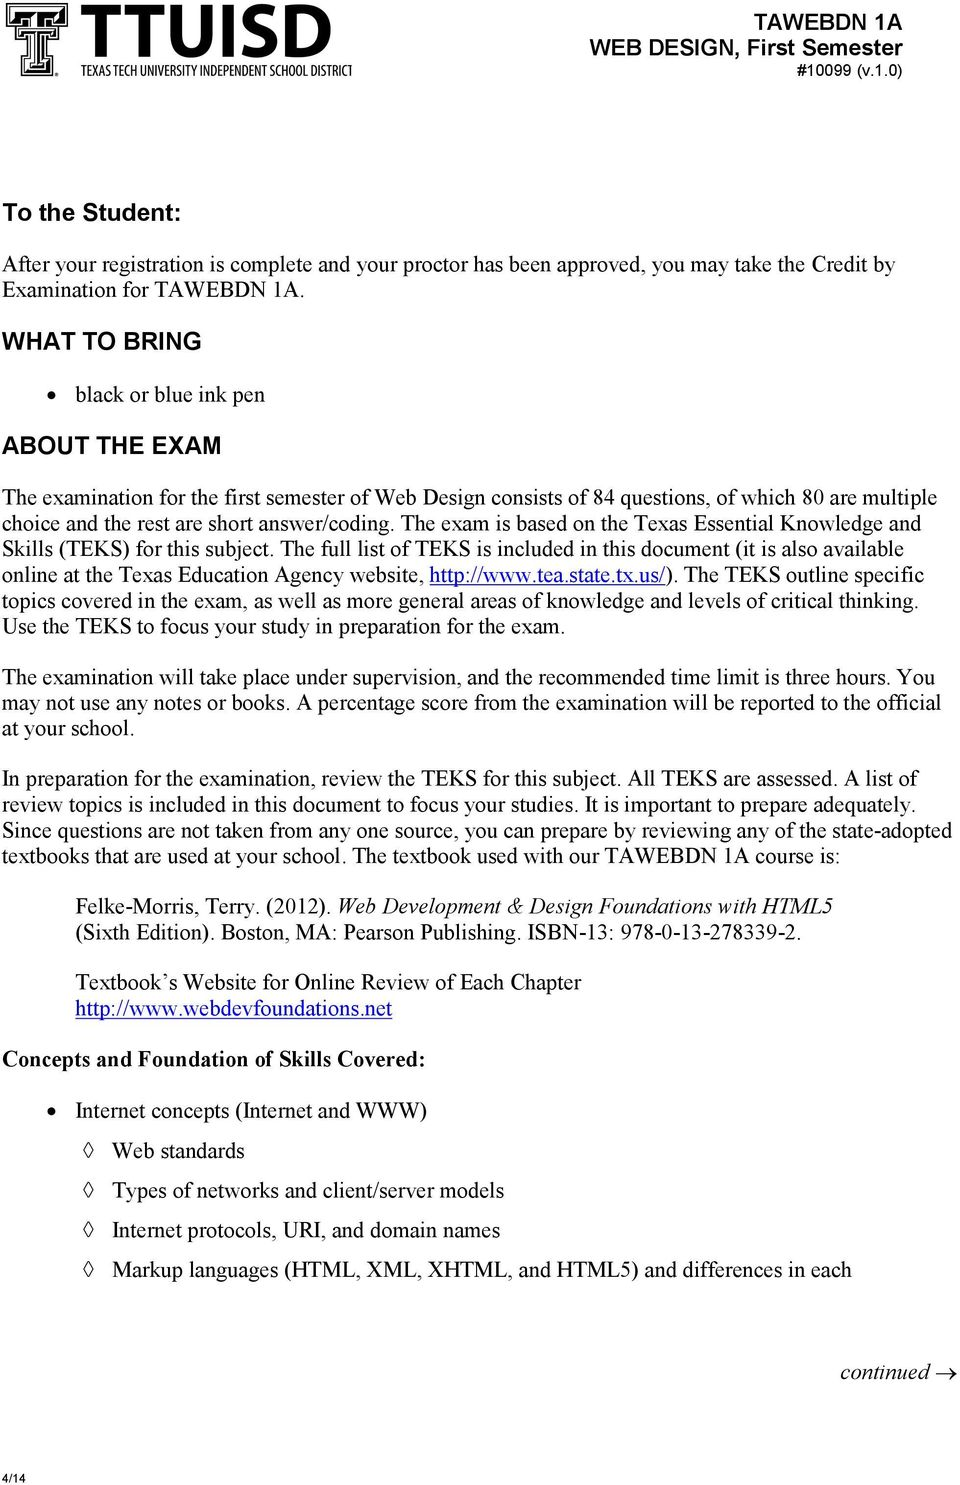 The exam is based on the Texas Essential Knowledge and Skills (TEKS) for this subject.